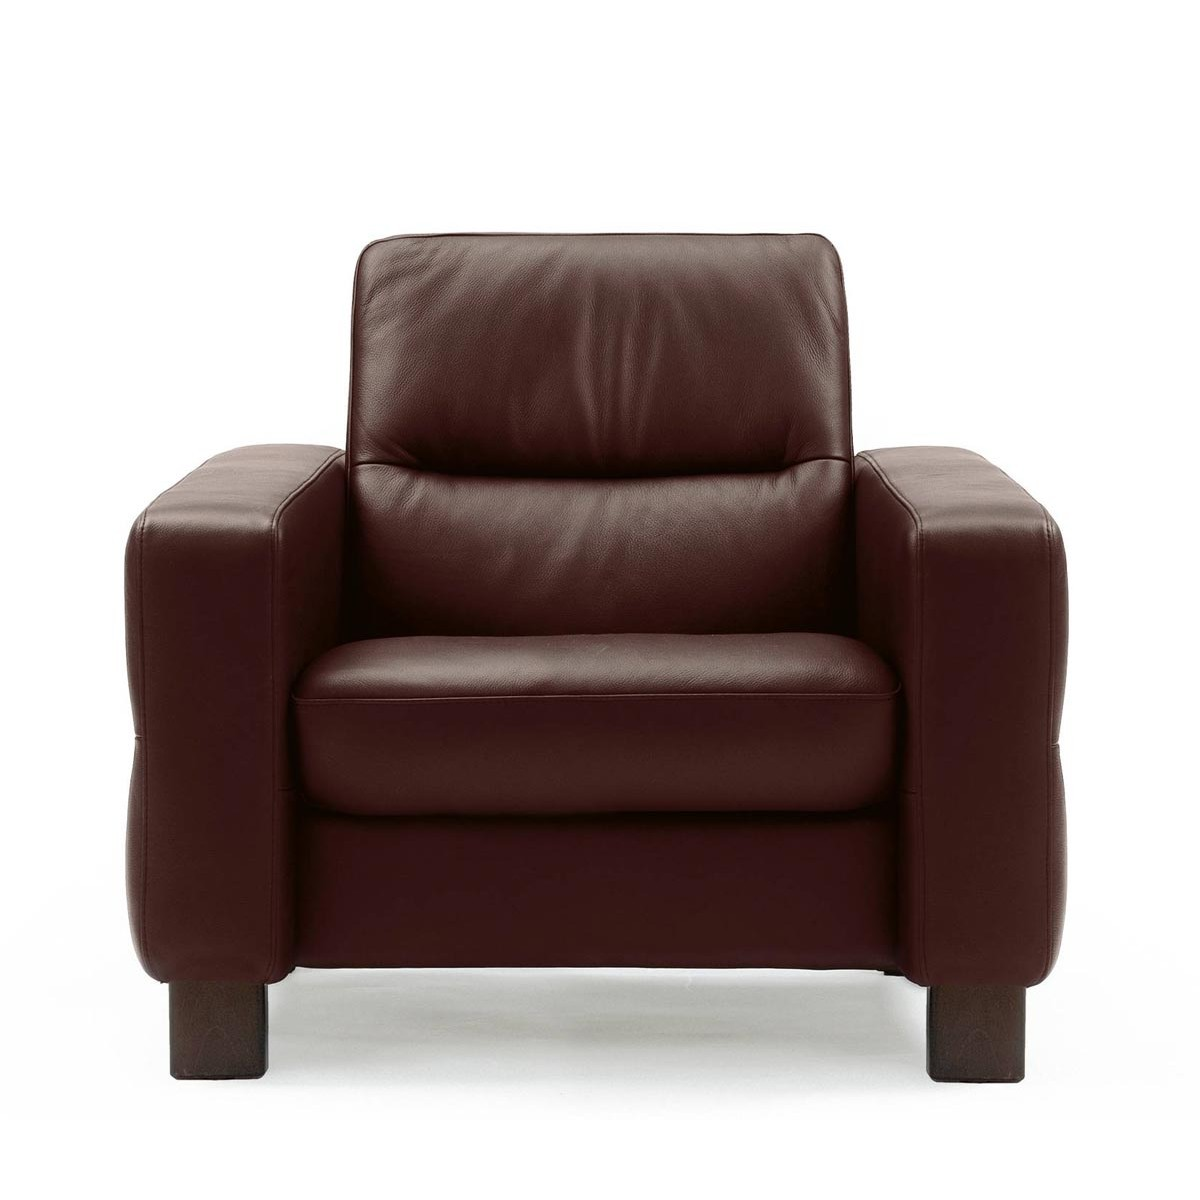 Stressless Wave Low Back Chair From 1 795 00 By